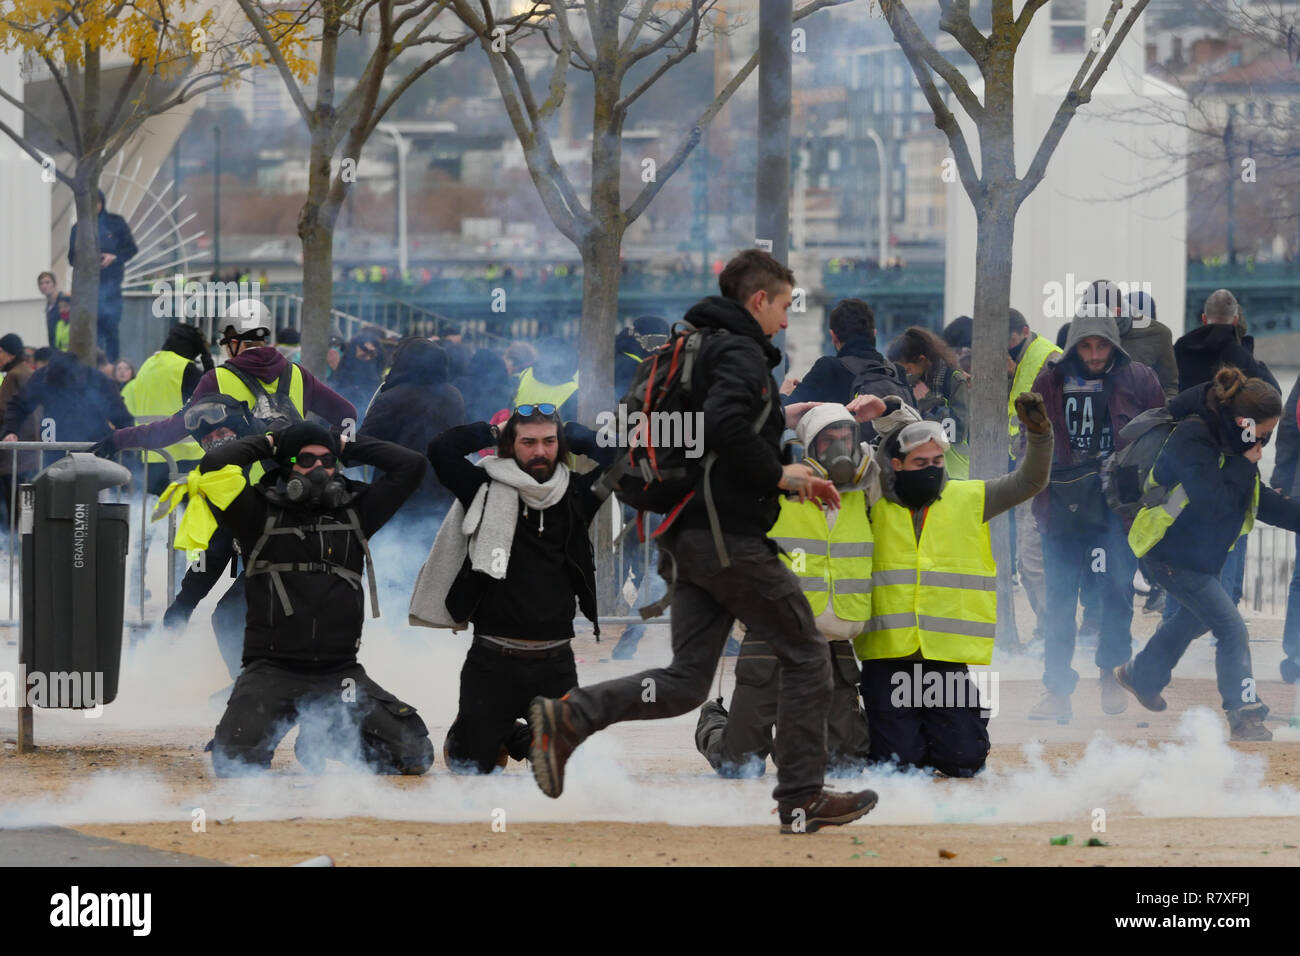 """Yellow Jackets"" protesters face Riot Police forces, Lyon, France Stock Photo"